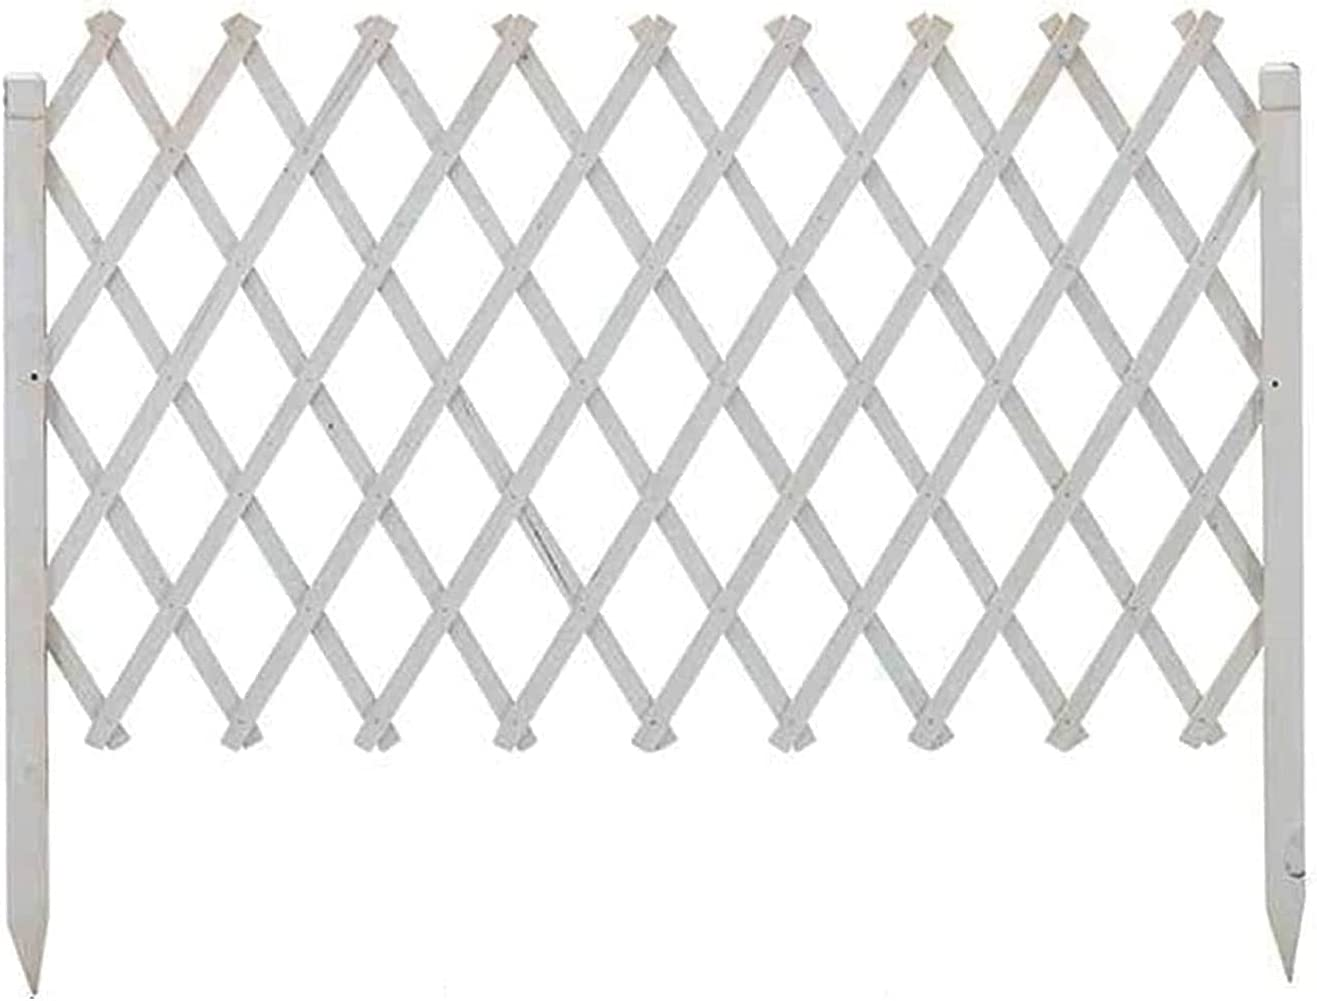 ZXFF Extended Fence Garden Fence Decorative Wooden Fence, Freestanding Wooden Grid Fence Garden Screen Plant Pet Dog Safety Fence (Size : H90xl180cm)